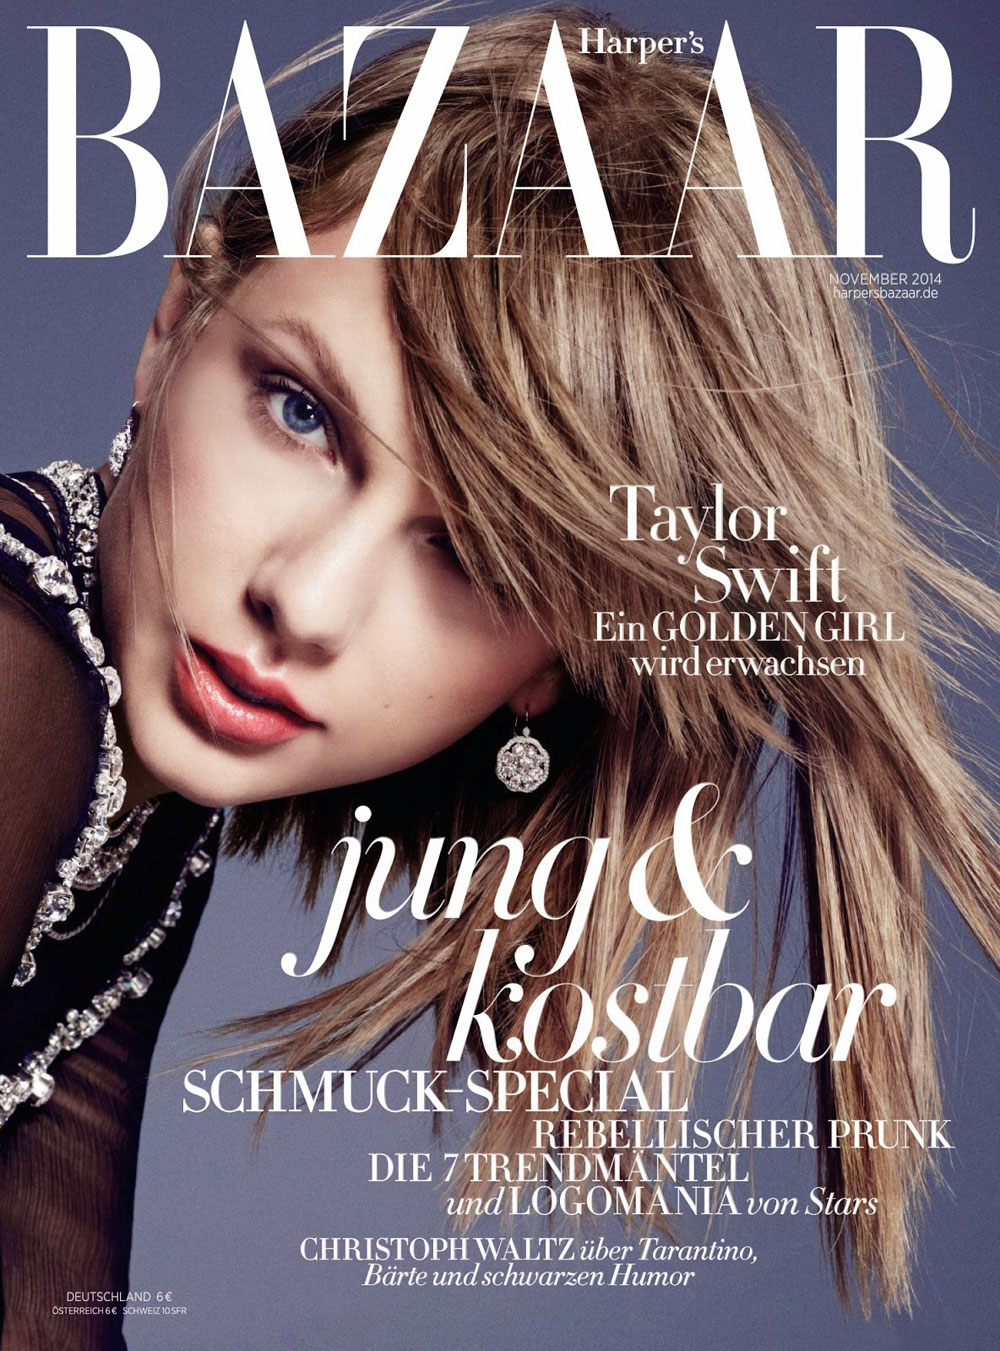 TAYLOR SWIFT FOR HARPER'S BAZAAR GERMANY